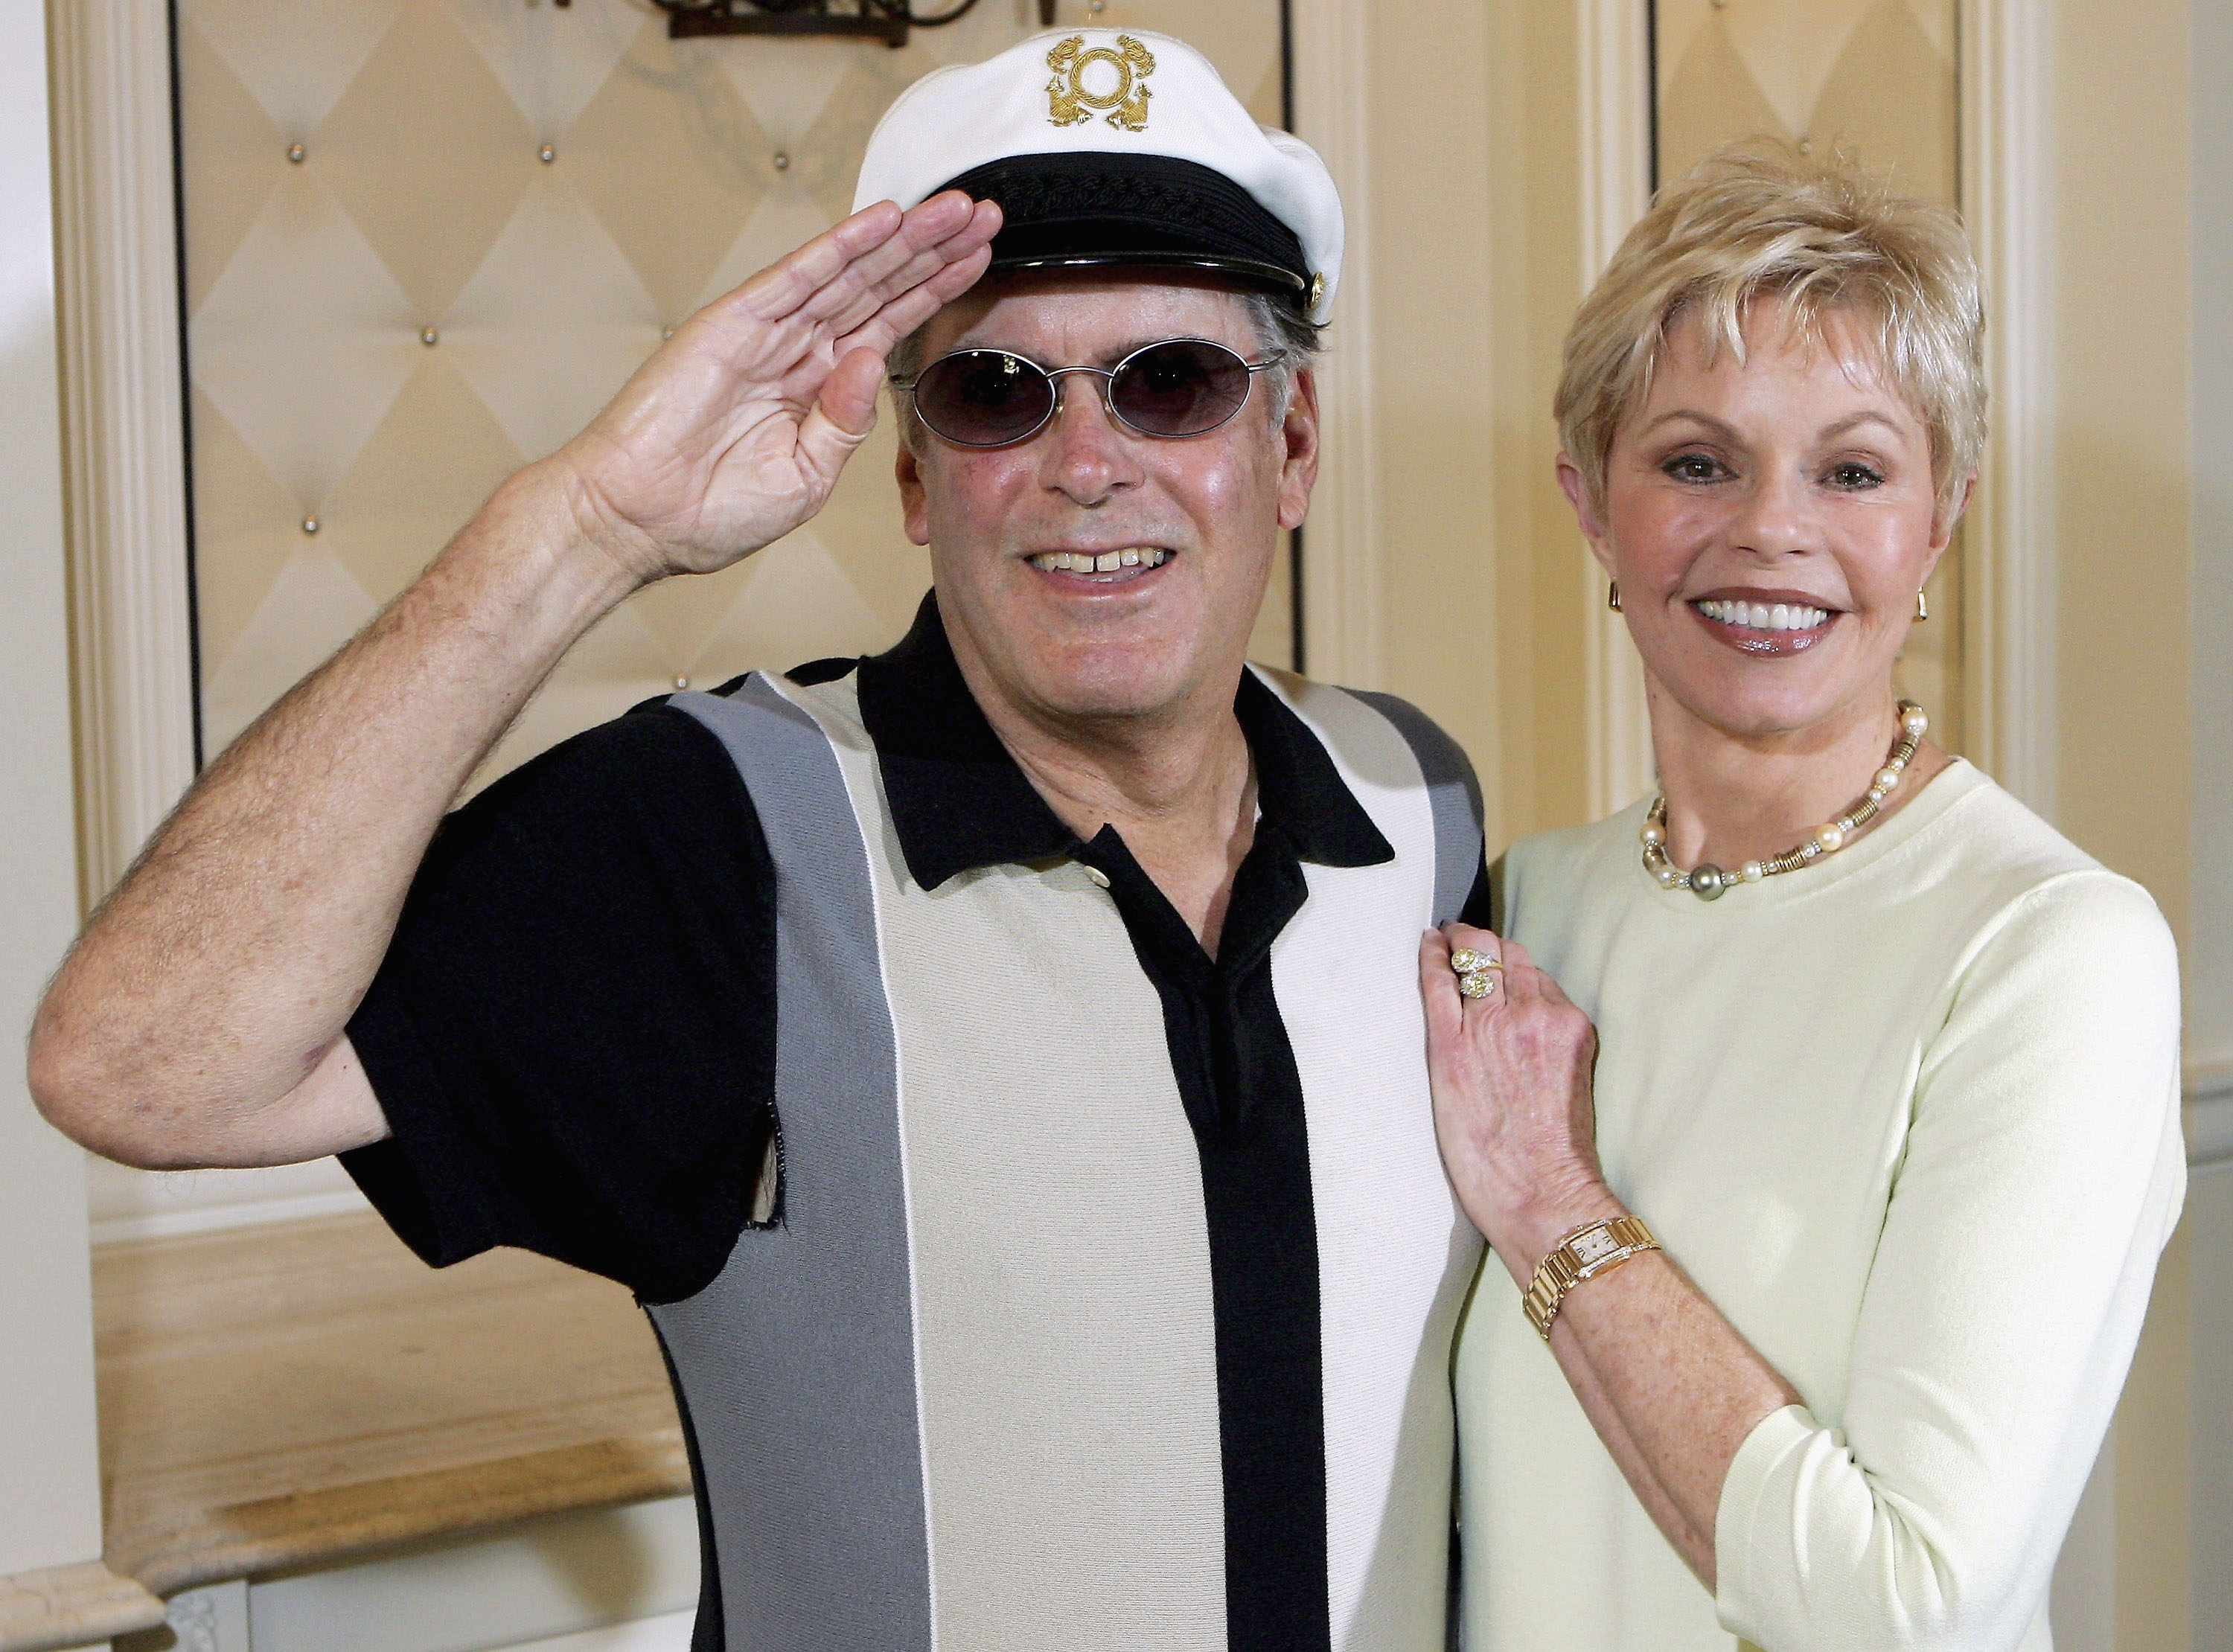 """Captain"" Daryl Dragon and his wife Toni Tennille of the music duo The Captain and Tennille"